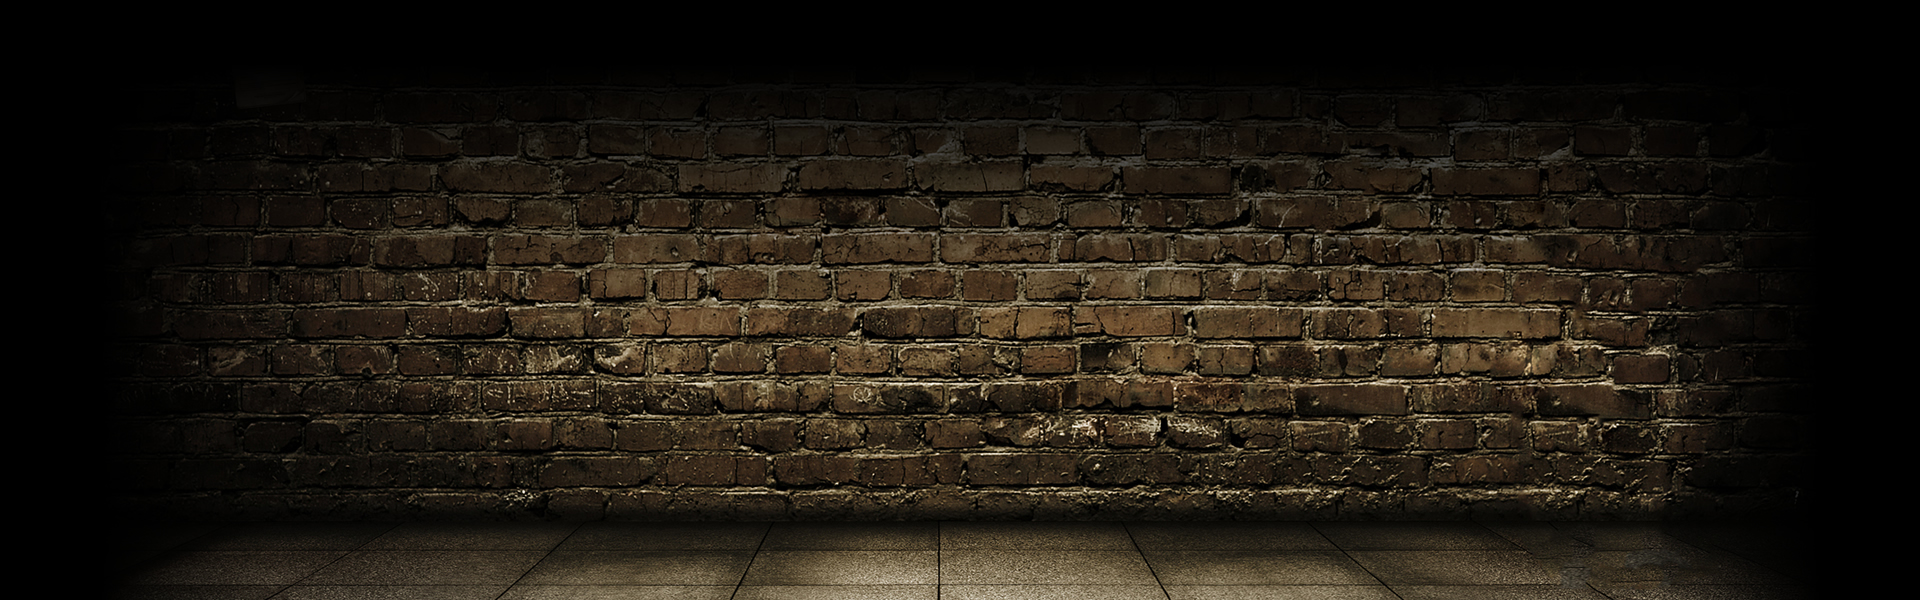 Black 3d Brick Wallpaper Tijolo Parede Material De Constru 231 227 O Stone Background